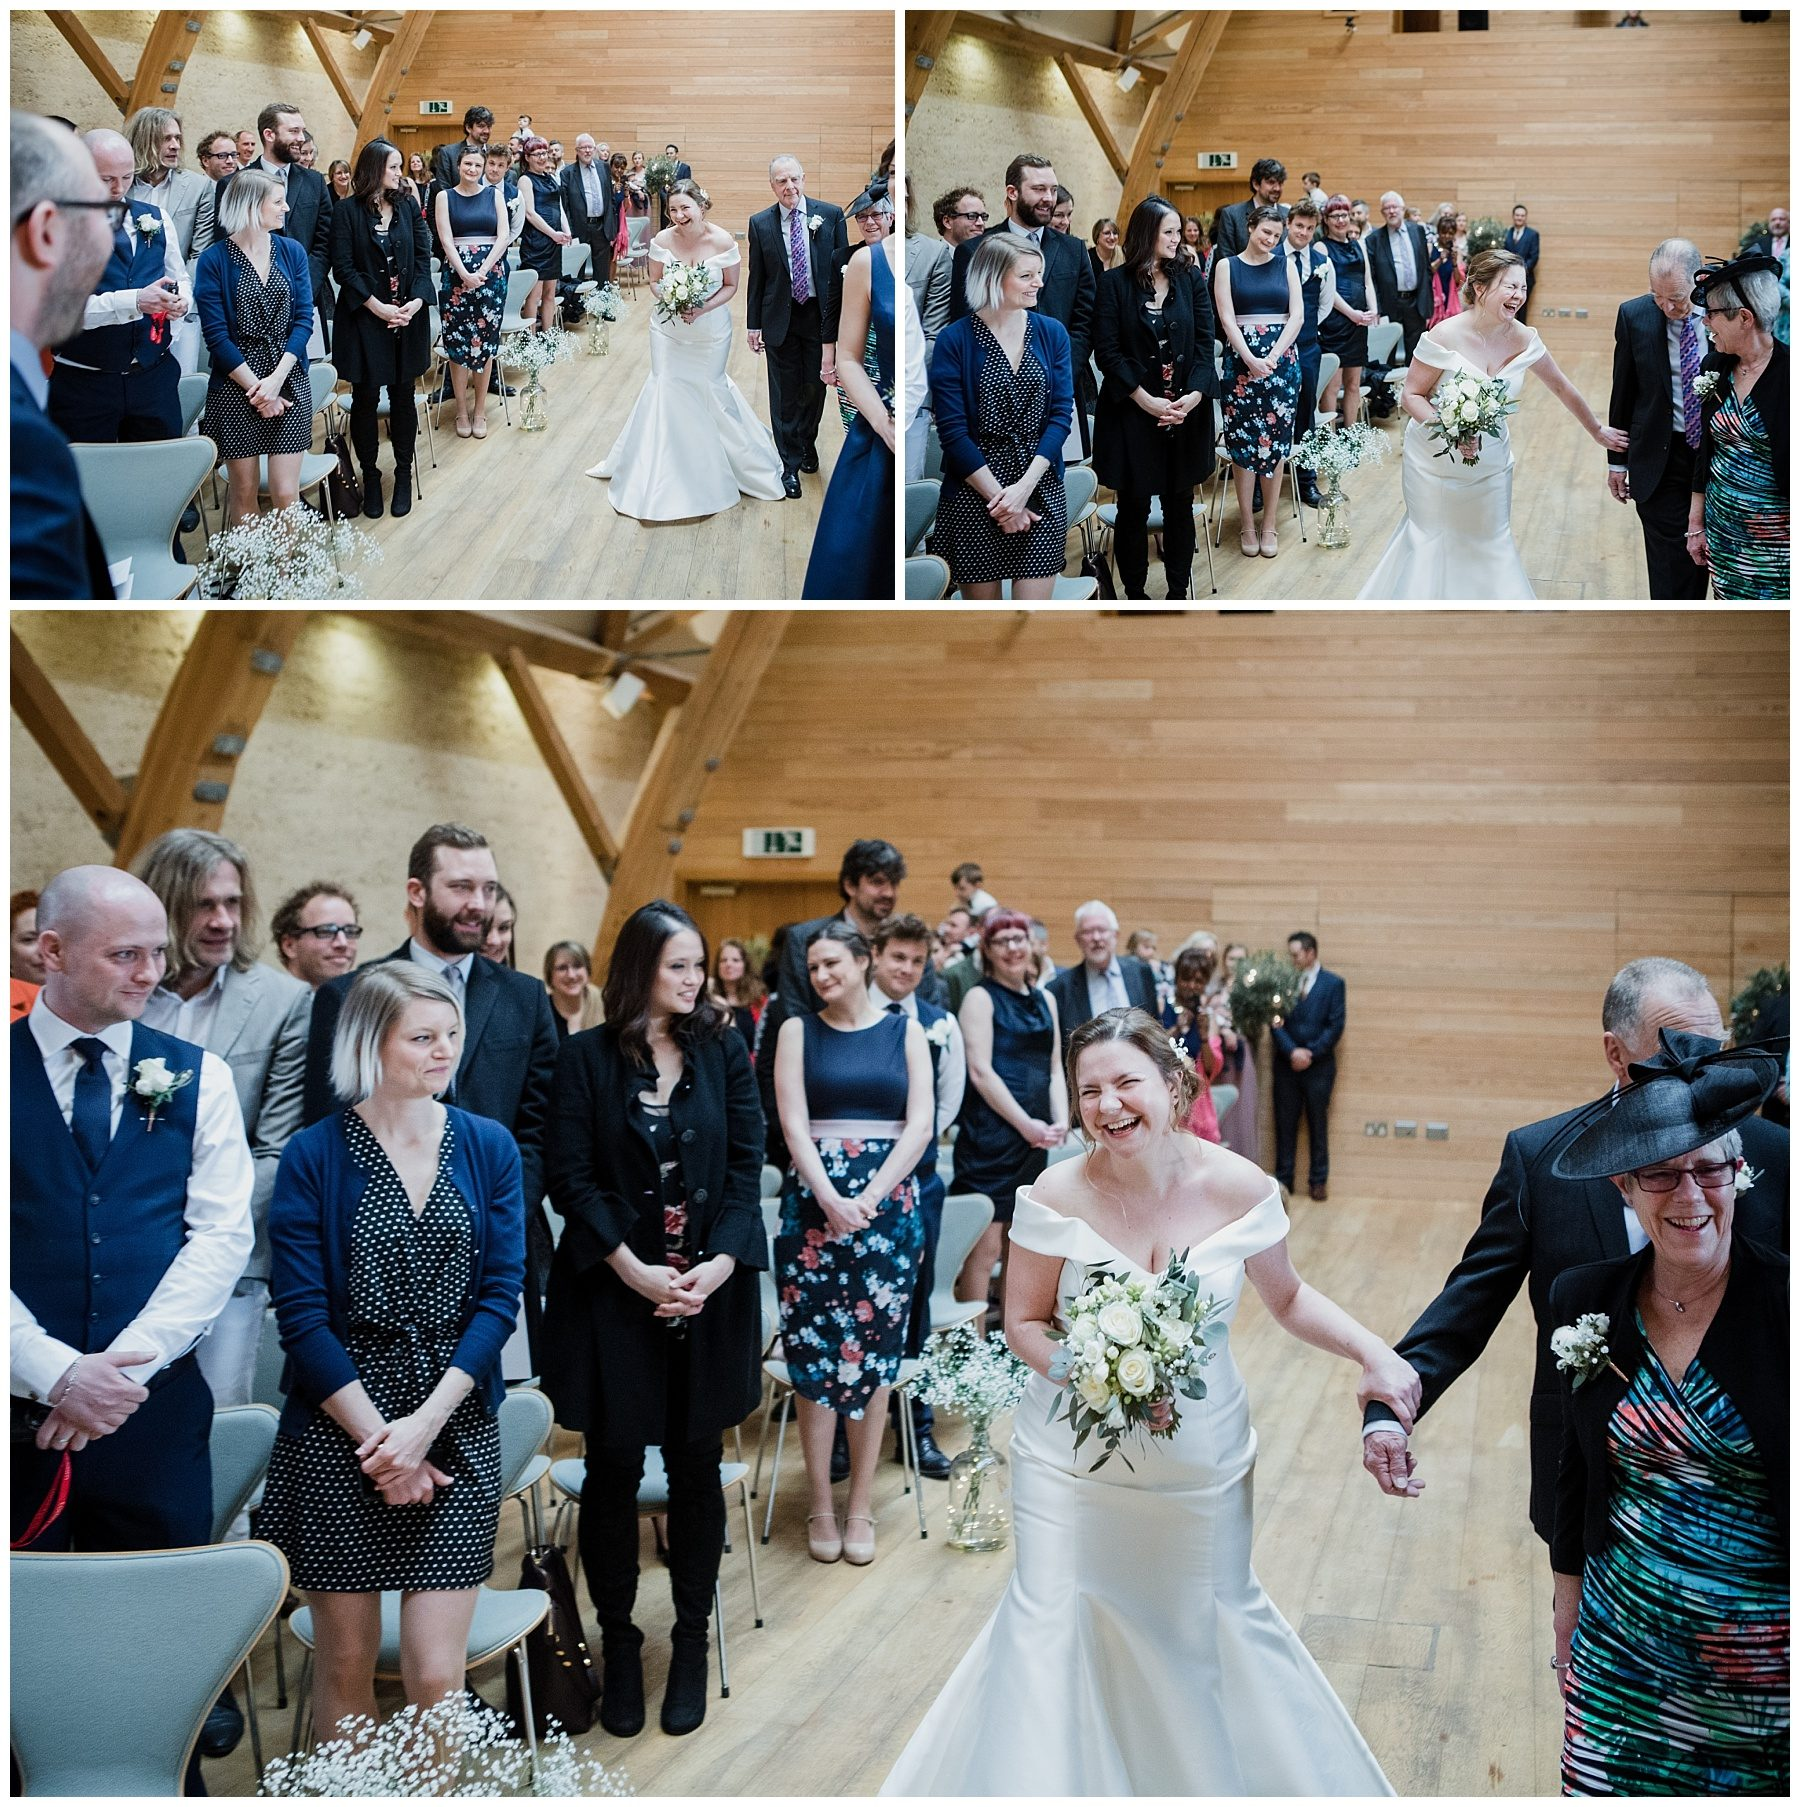 Bride laughing as walking down the isle